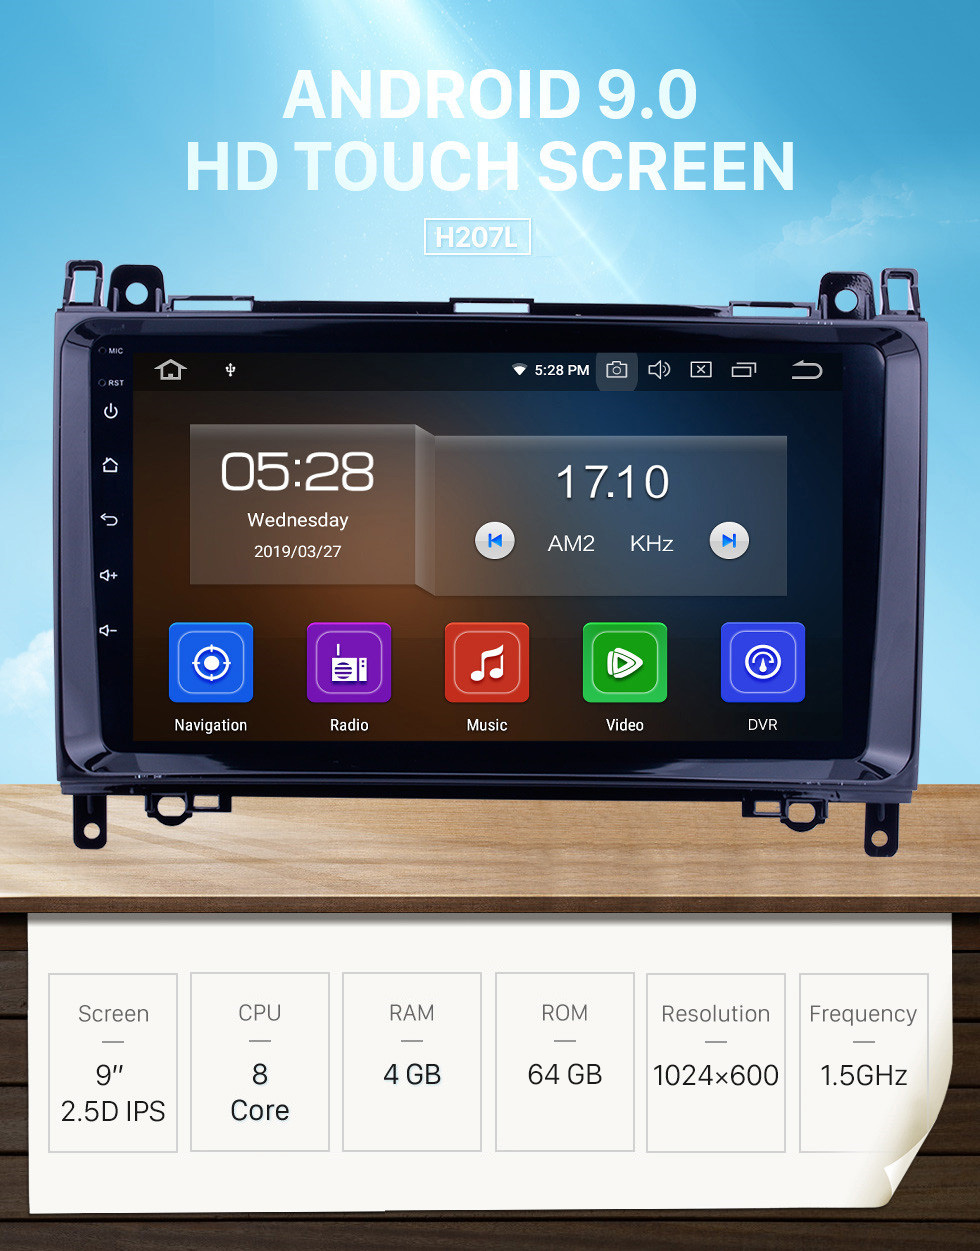 Seicane 9 inch HD 1024*600 Multi-touch Screen 2004-2012 Mercedes Benz A Class W169 A150 A160 A170 Android 9.0 Autoradio GPS Navigation Head Unit with Bluetooth music WiFi Mirror Link OBD2